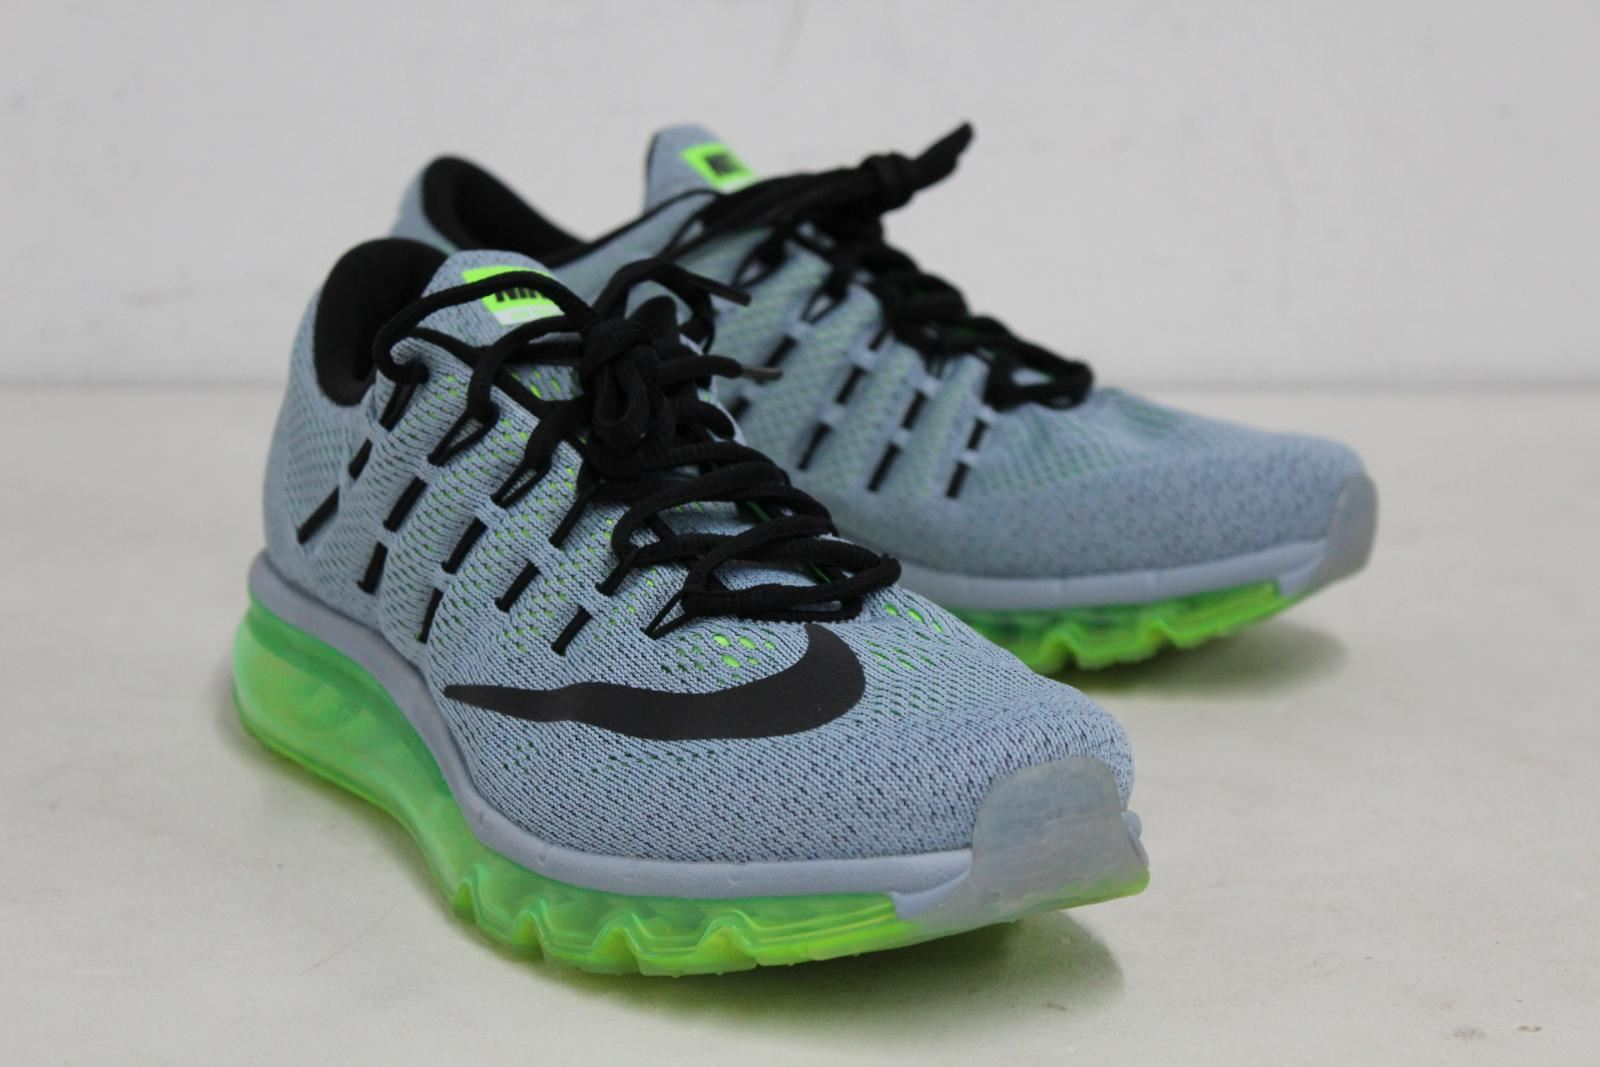 NIKE Air Max 2016 Ocean Fog 806771-403 Bubble Sole Mens Running Trainers UK8.5